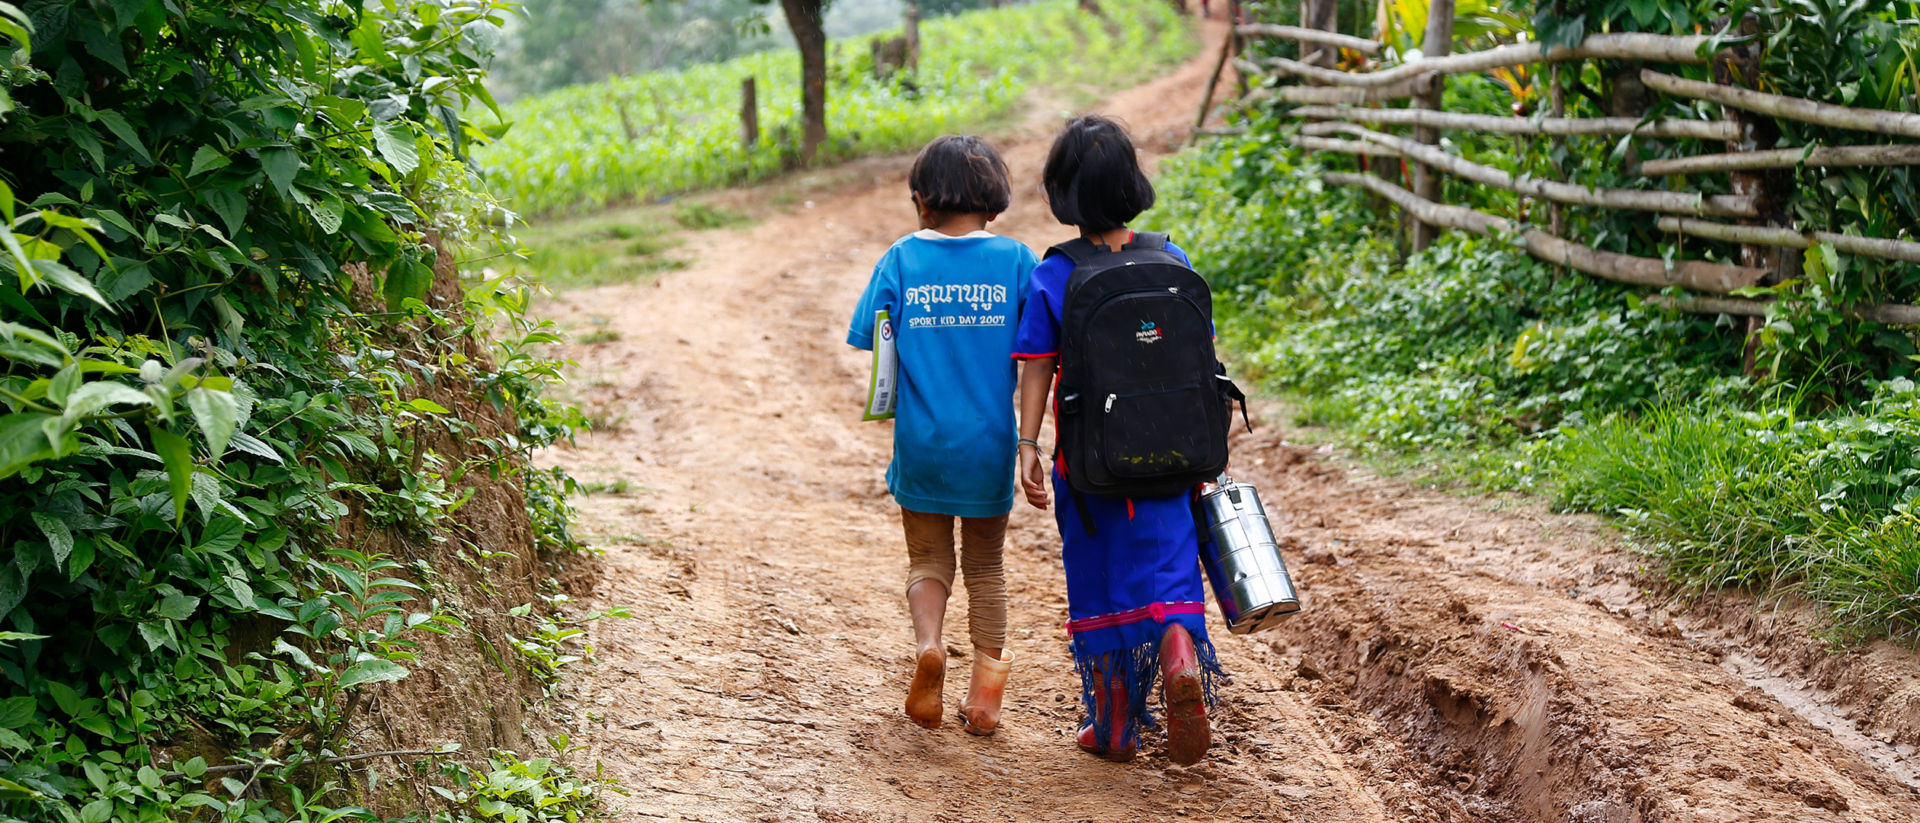 Compassion's partner church in Kotah is working to ensure that village children get the education they deserve, despite their isolated location.